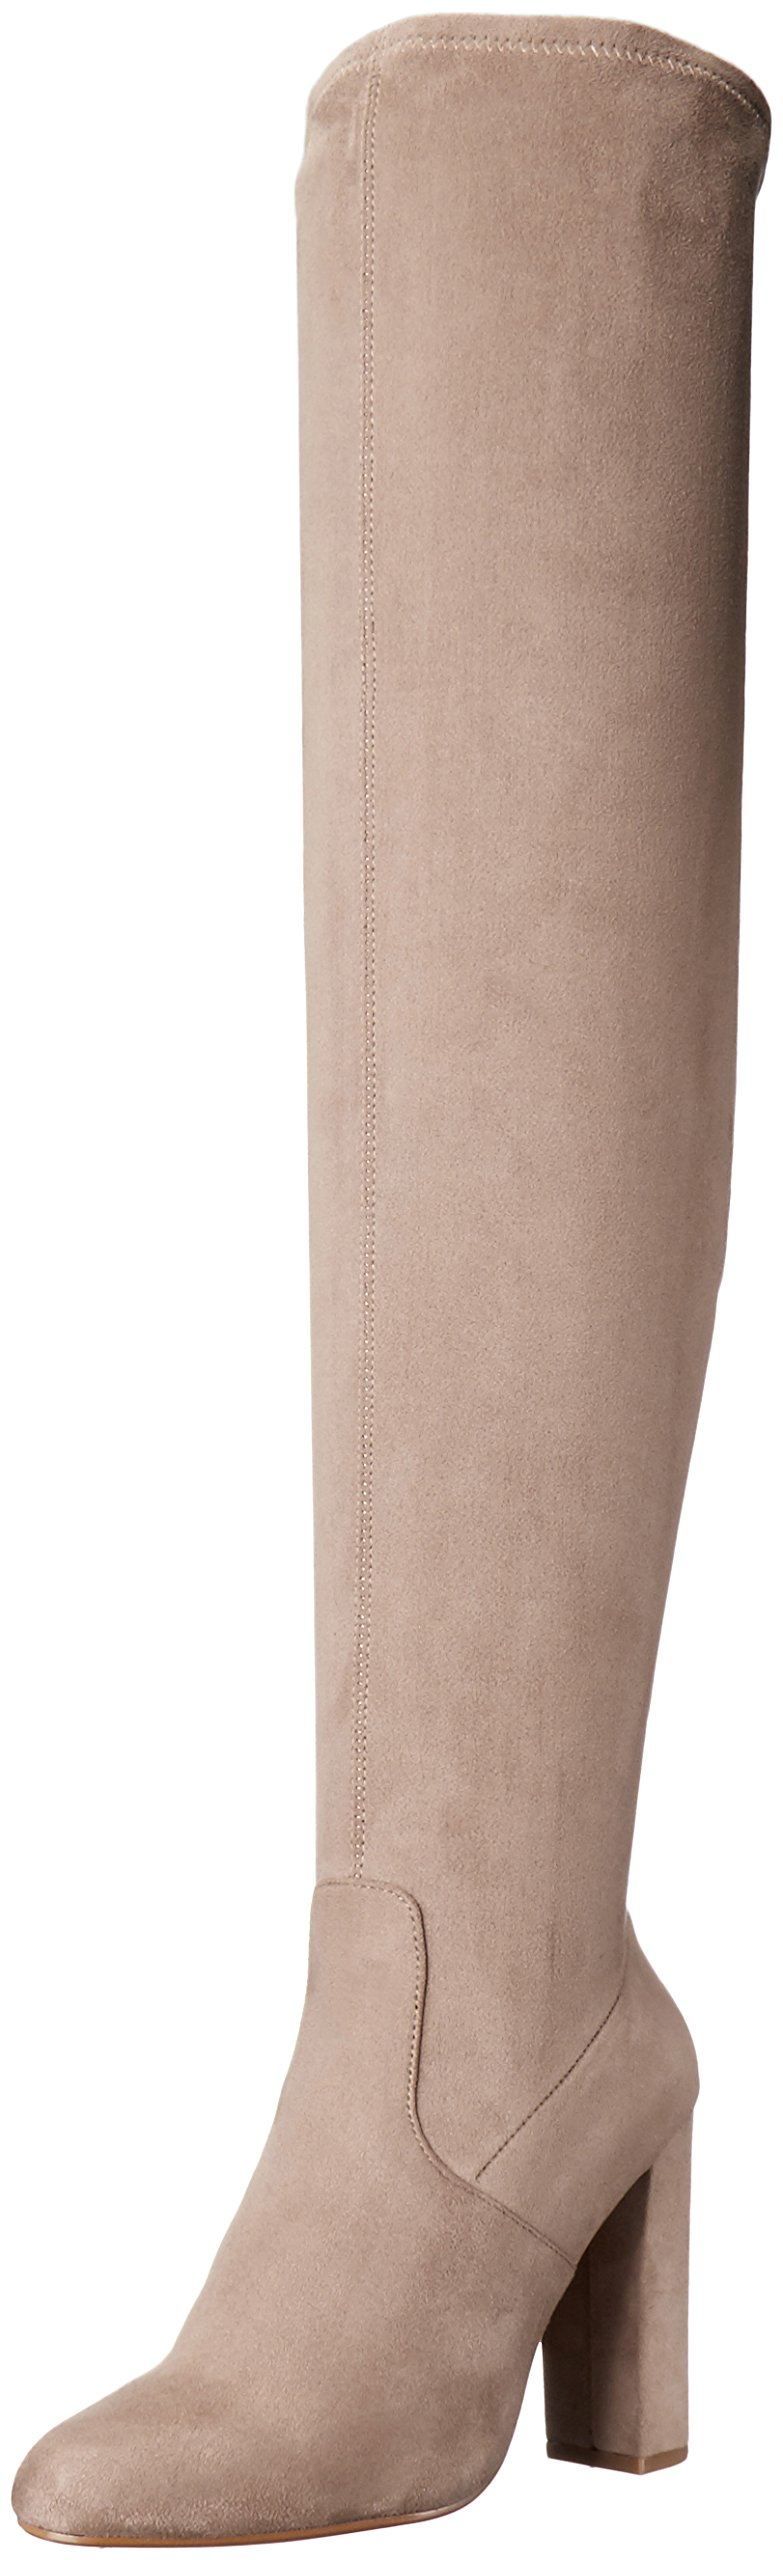 Steve Madden Women's Emotions Over The Knee Boot, Taupe, 6.5 M US